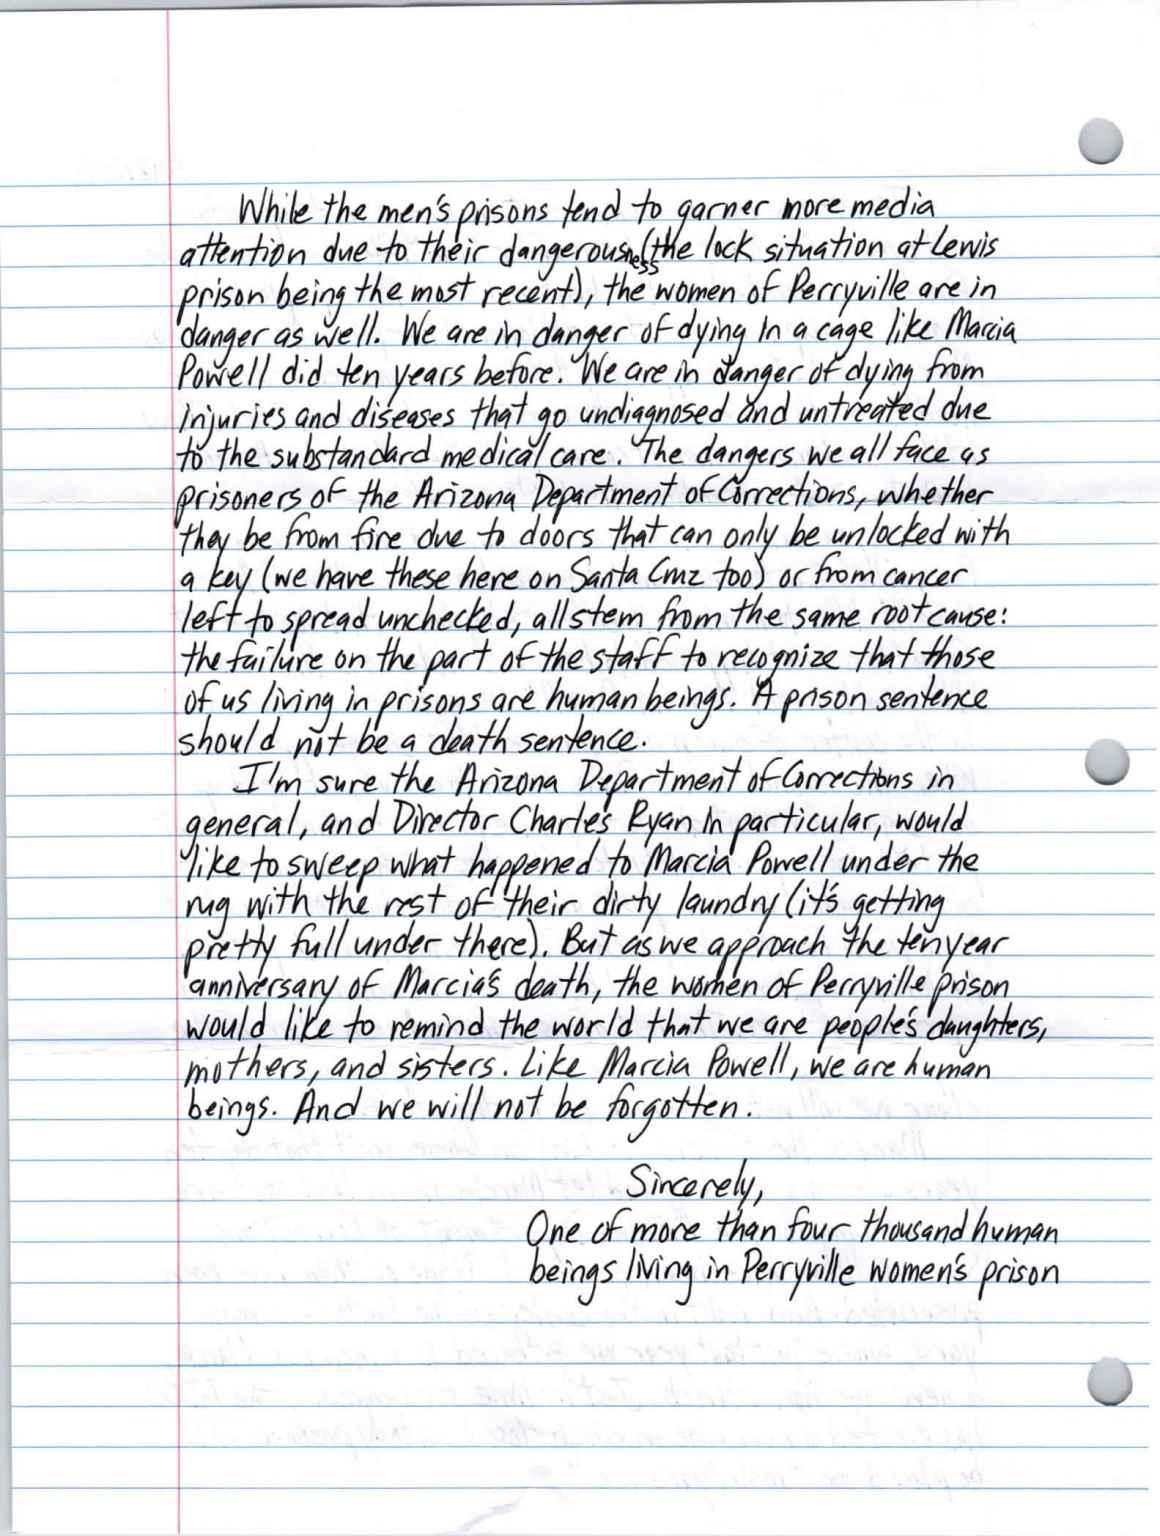 Perryville Letter Page 1_Page_2.jpg